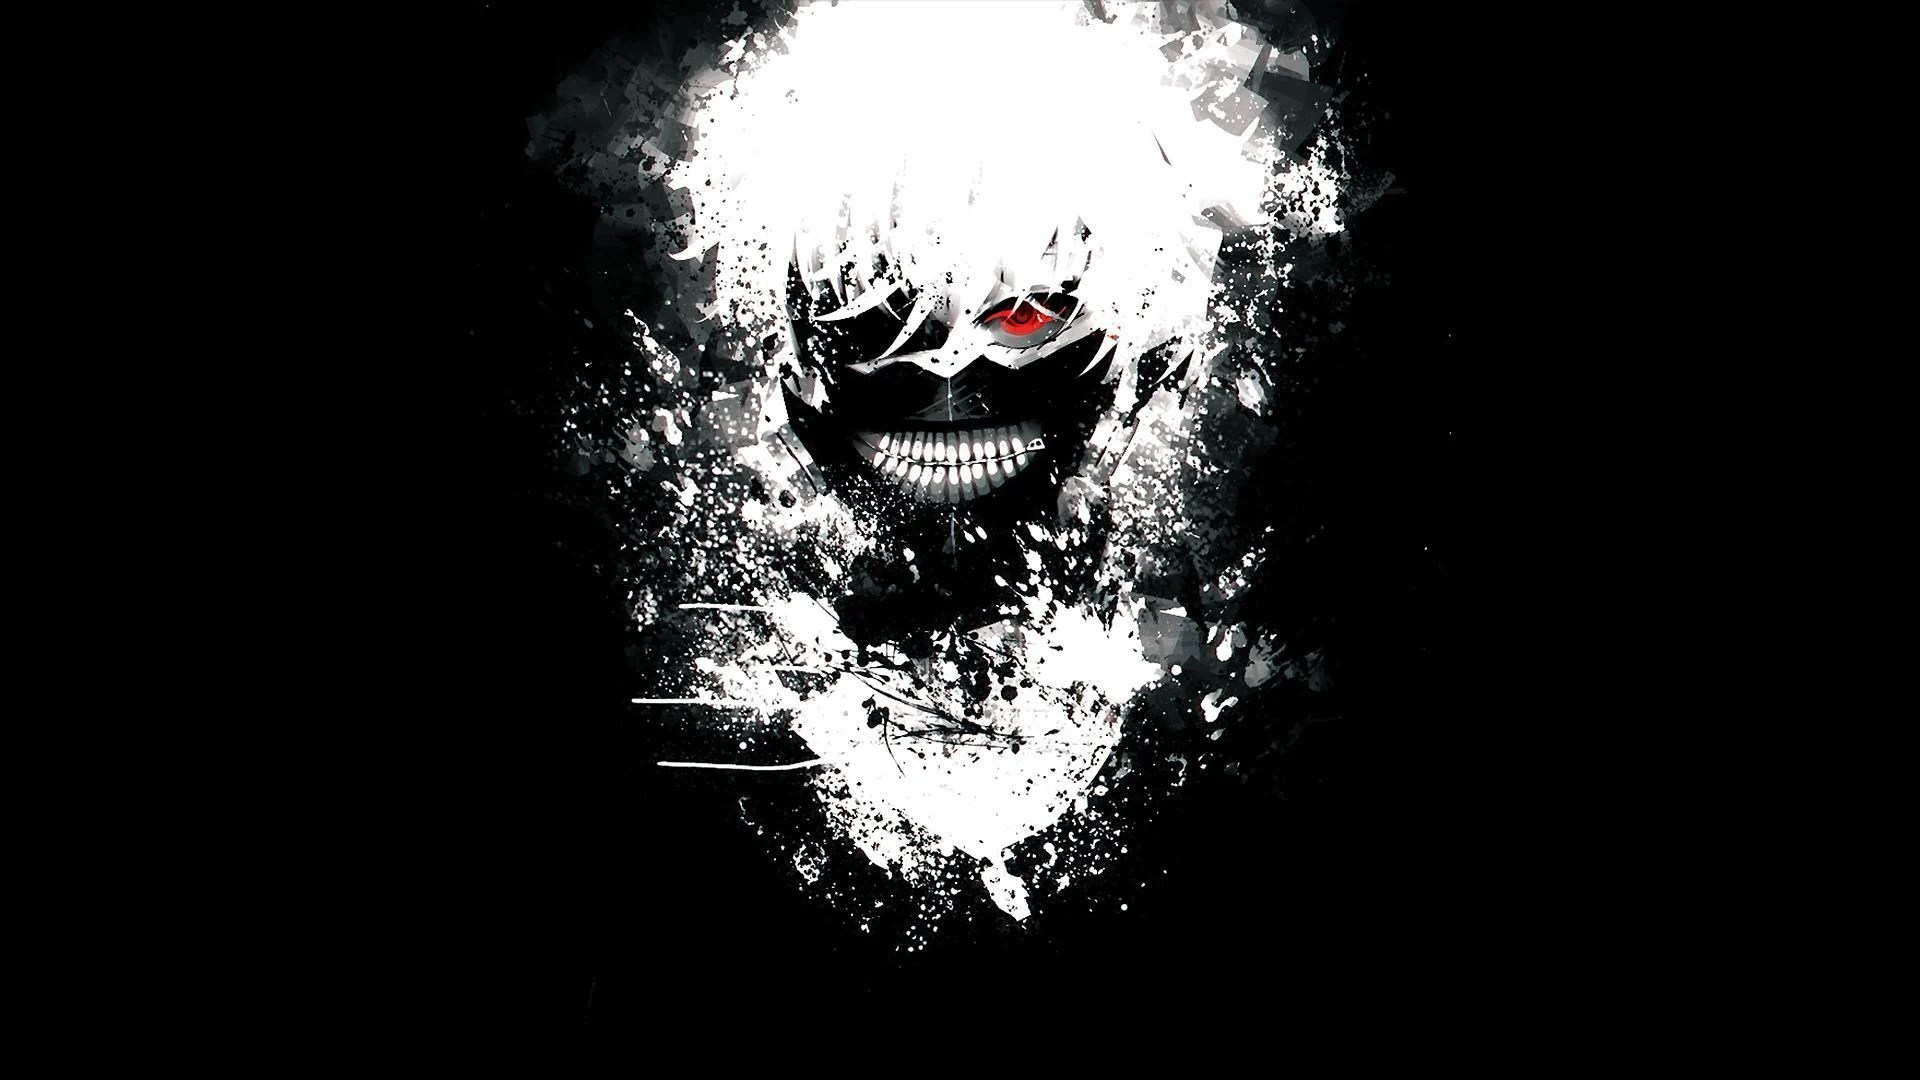 Tokyo Ghoul Black And White Wallpapers Top Free Tokyo Ghoul Black And White Backgrounds Wallpaperaccess